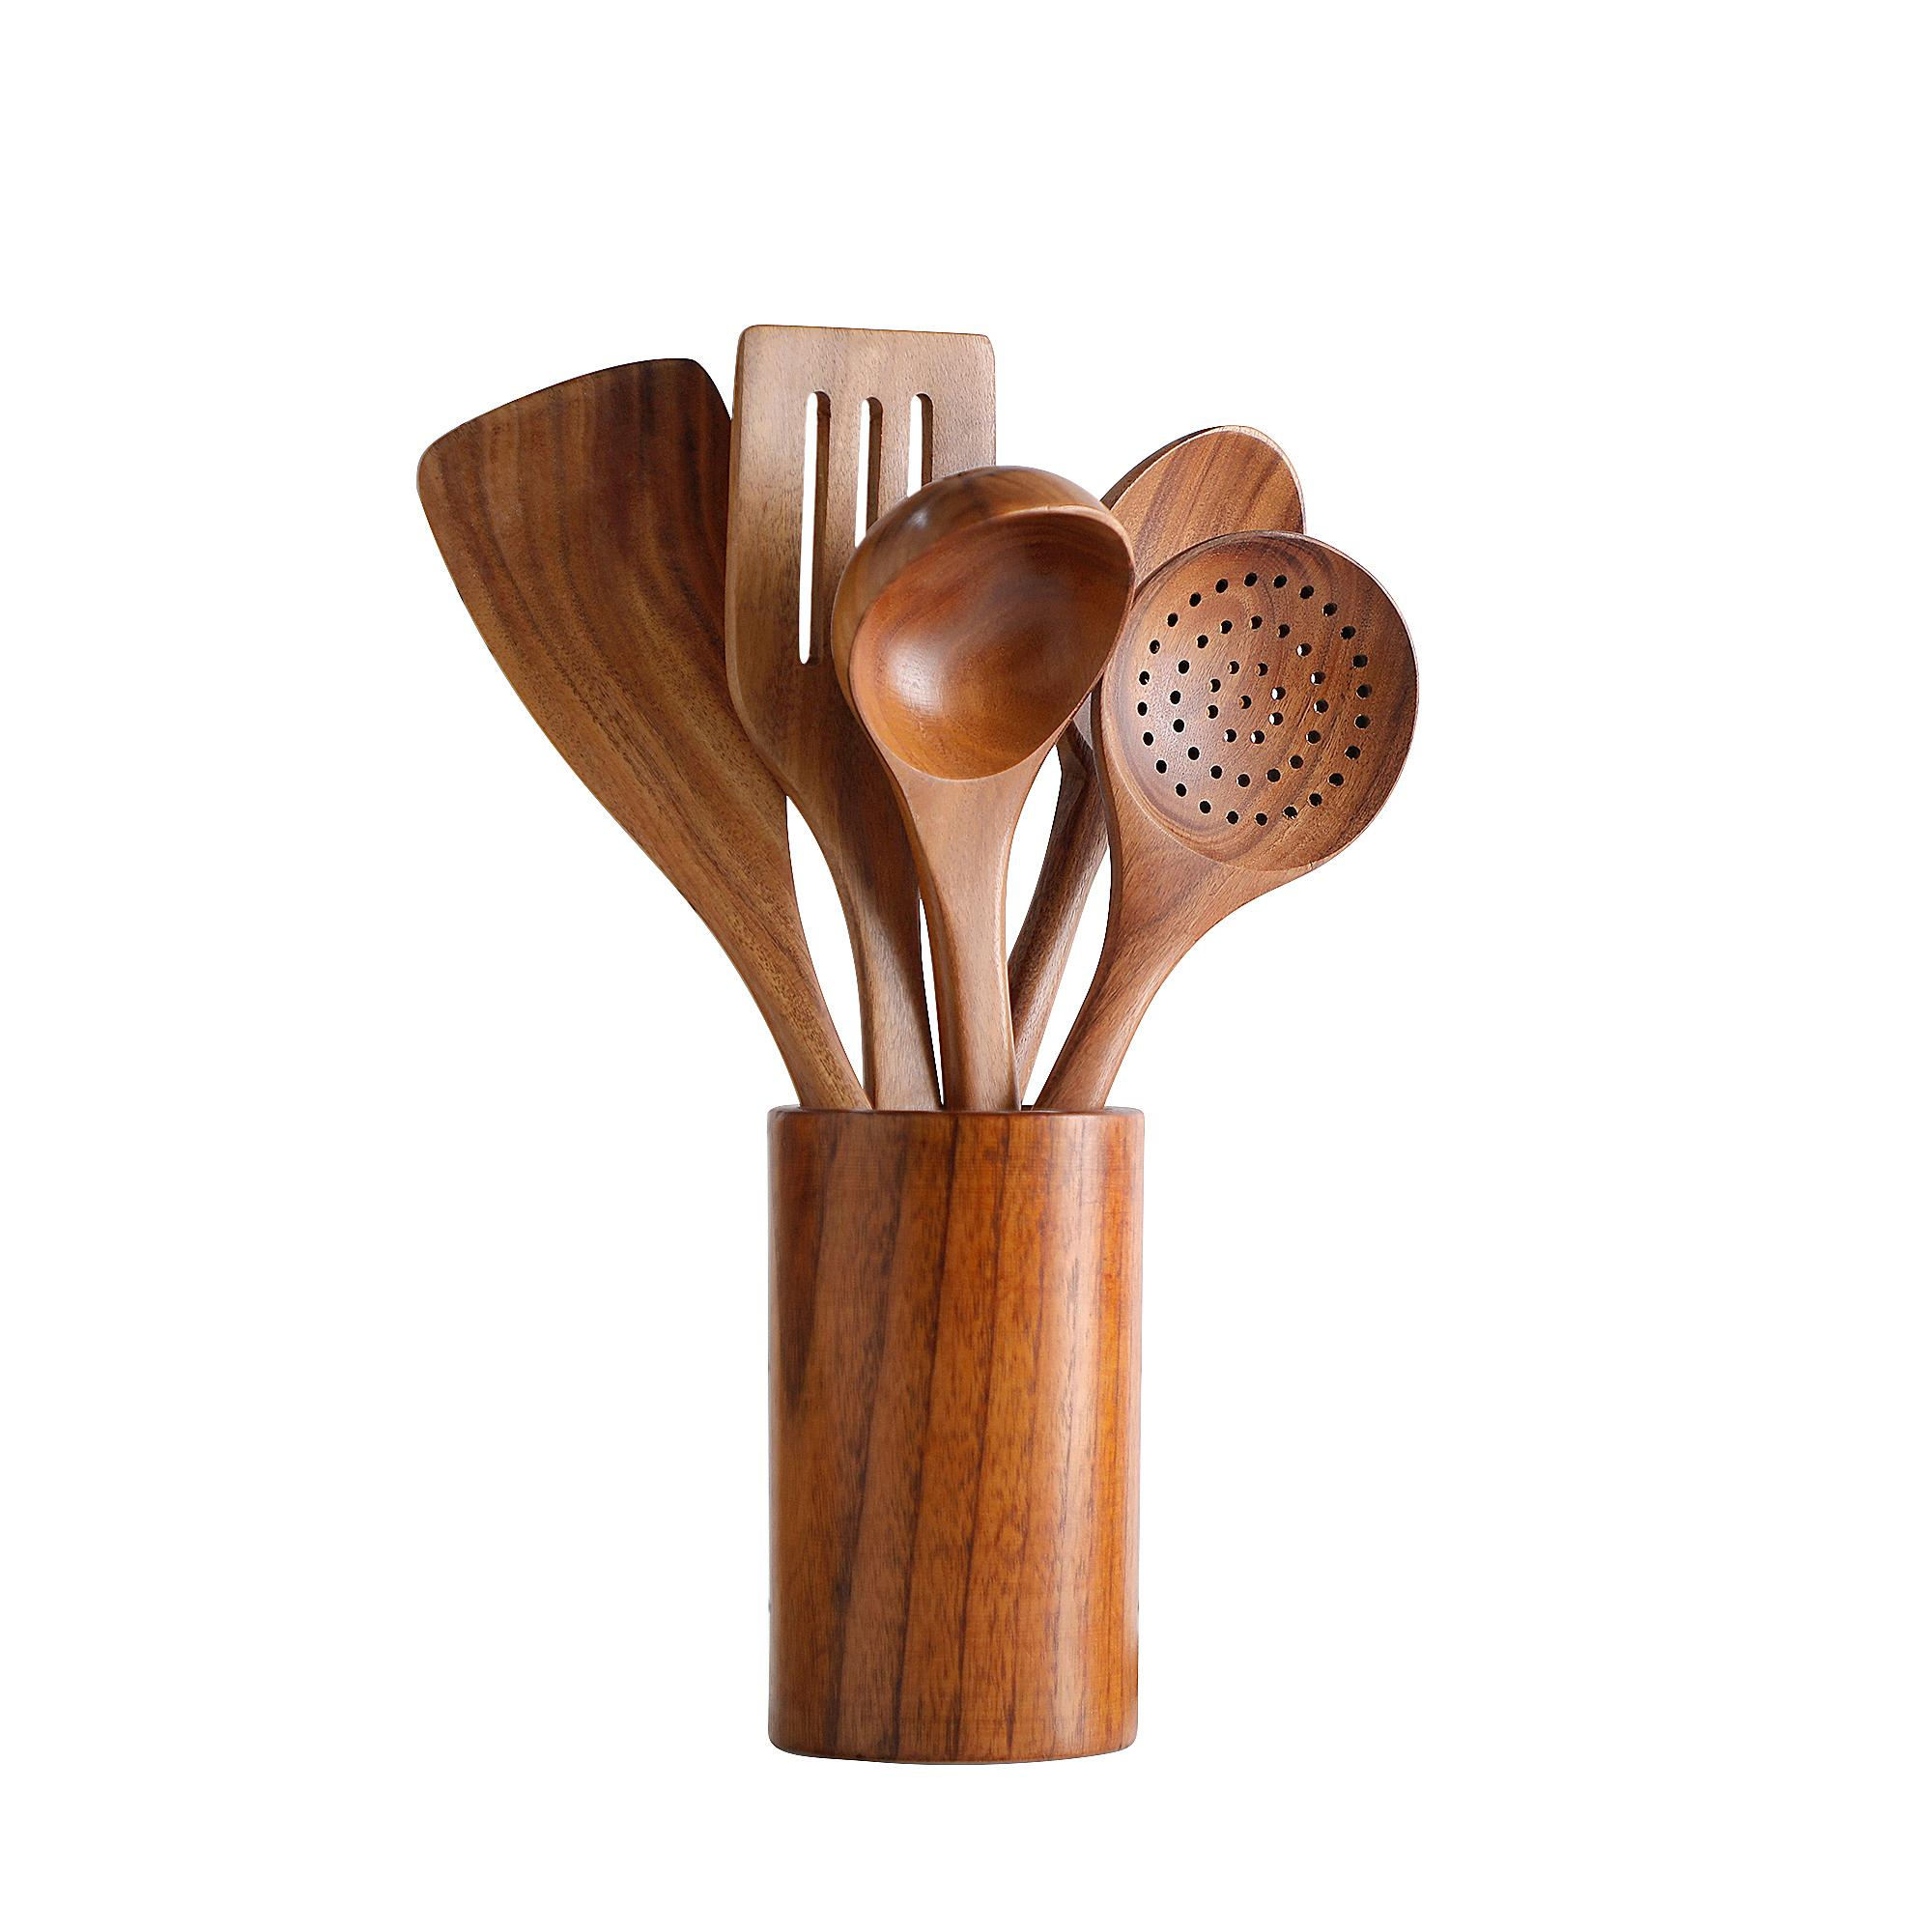 Wooden Cooking Utensils Set, Natural Teak Wood Eco-friendly Kitchen Spoons Spatula Utensil Tools for Nonstick Cookware